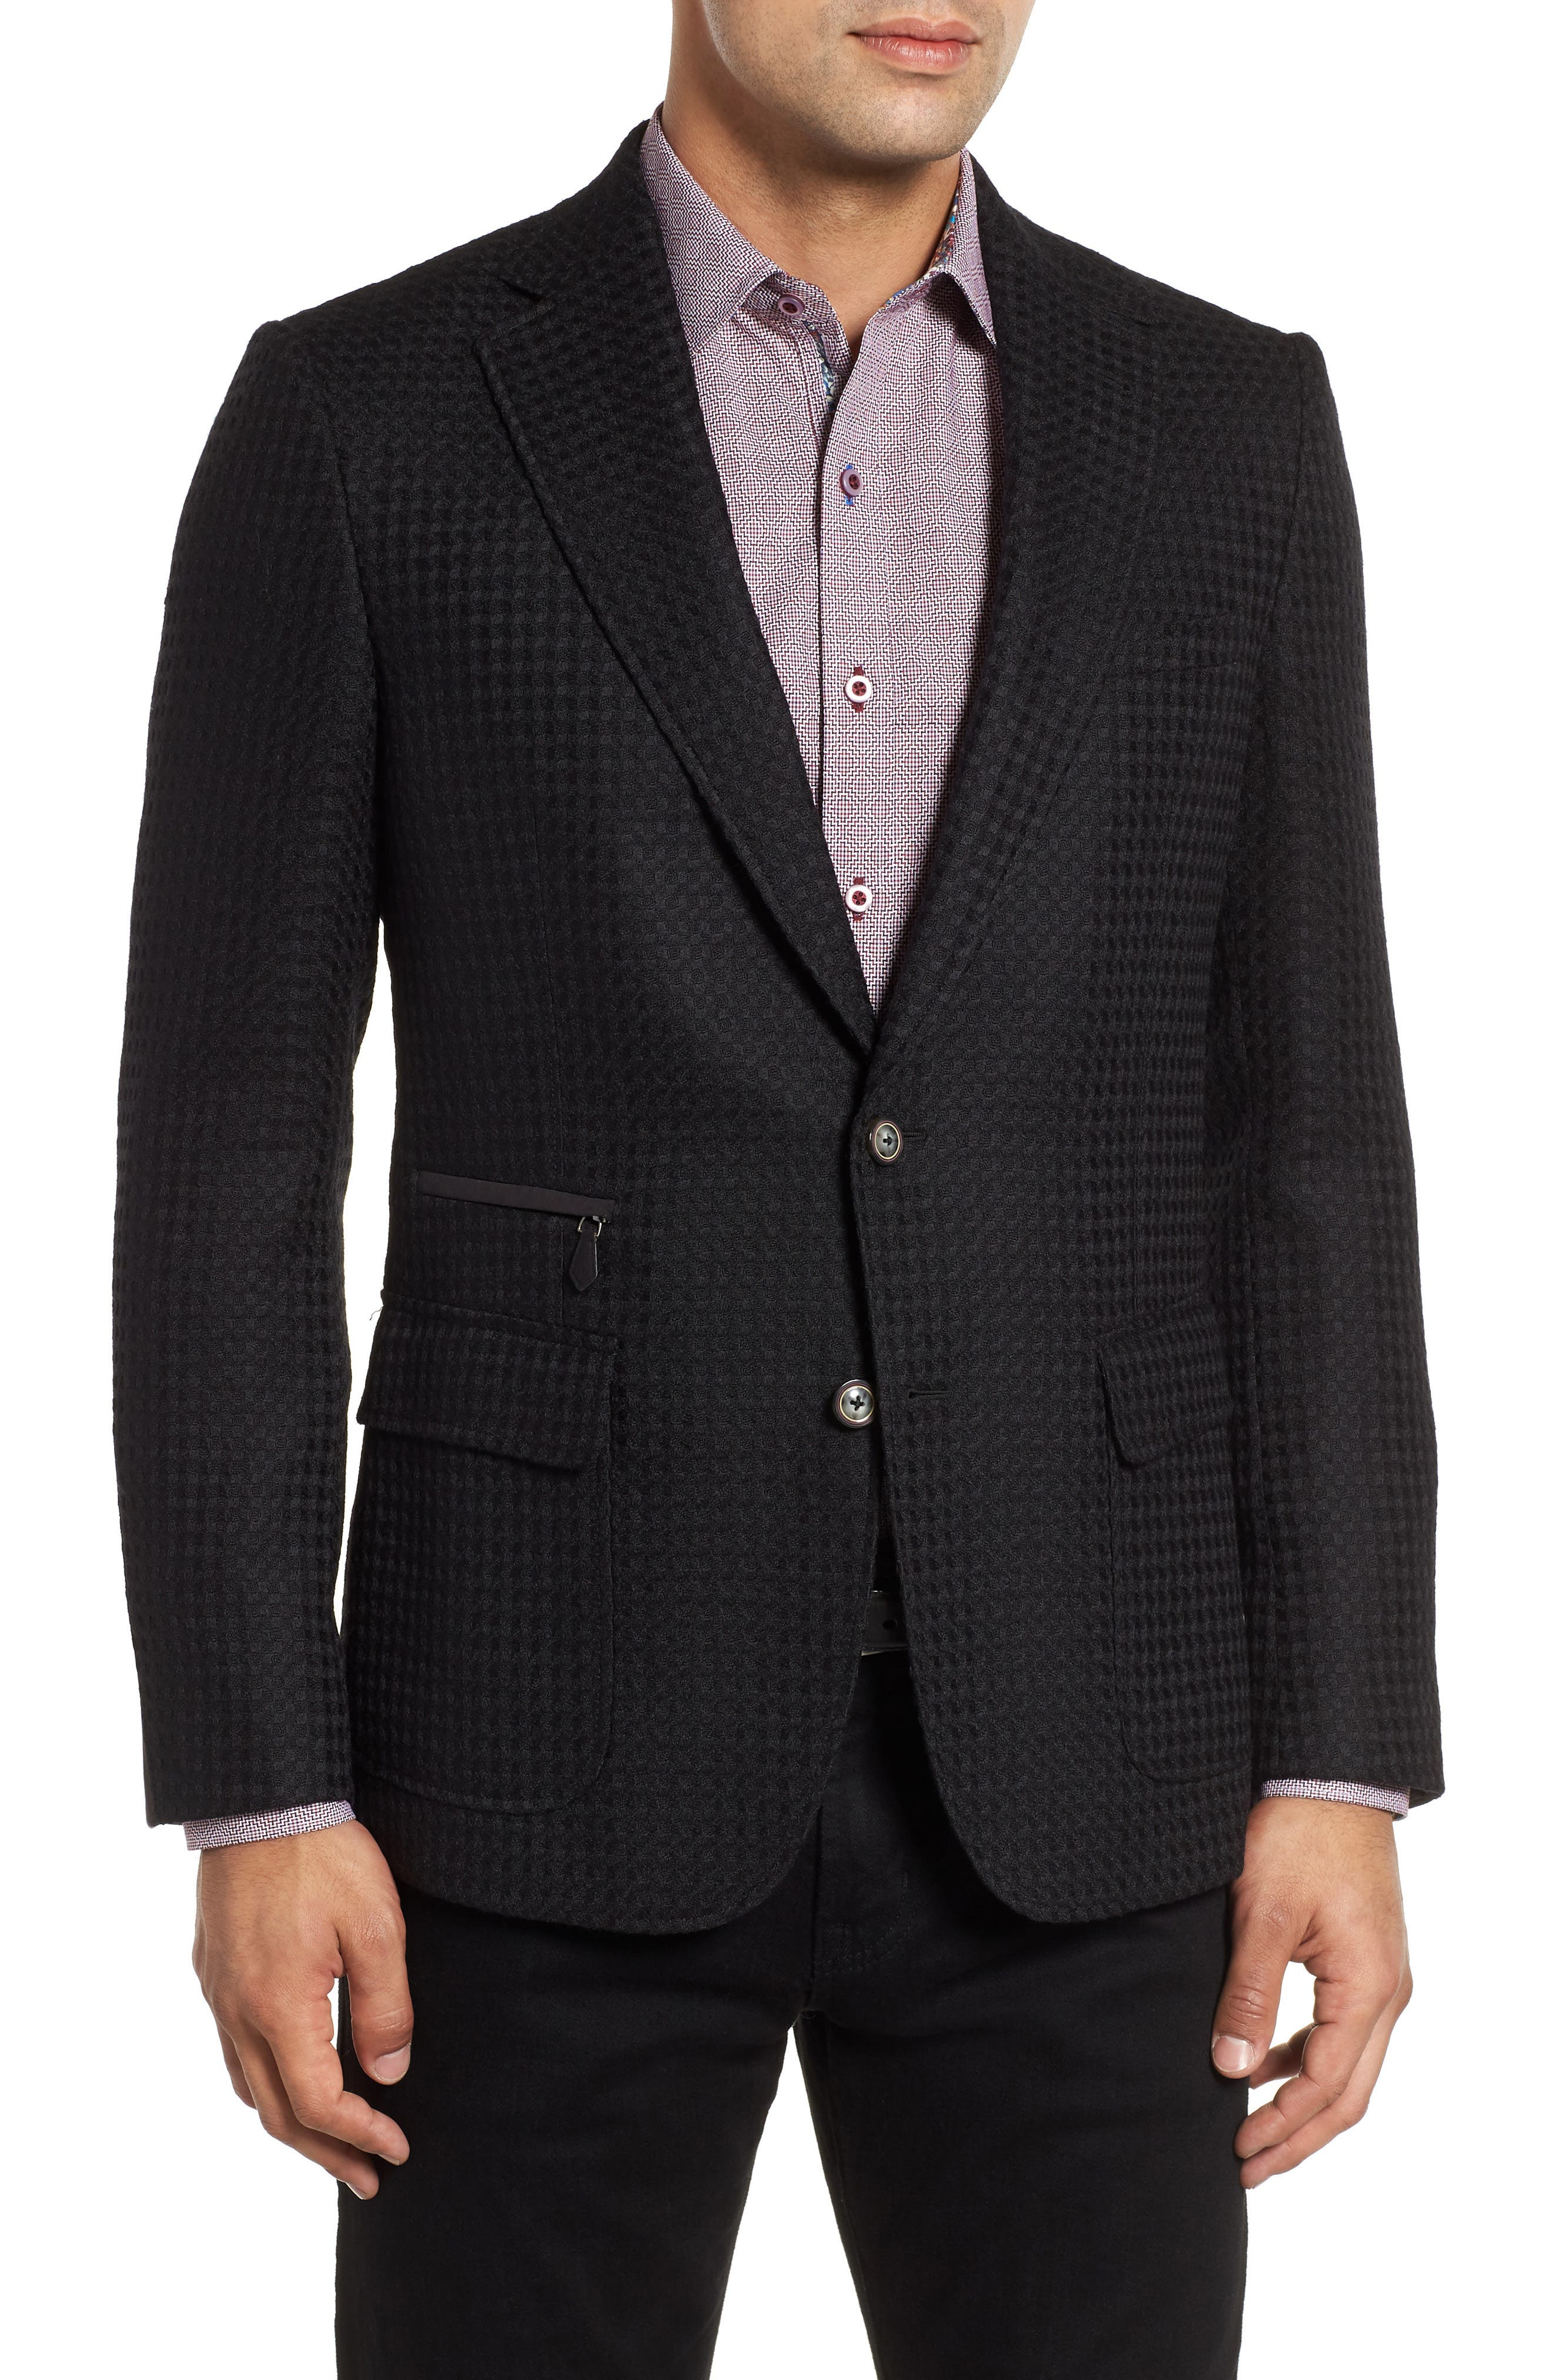 Downhill Tailored Wool Sport Coat,                             Alternate thumbnail 4, color,                             001